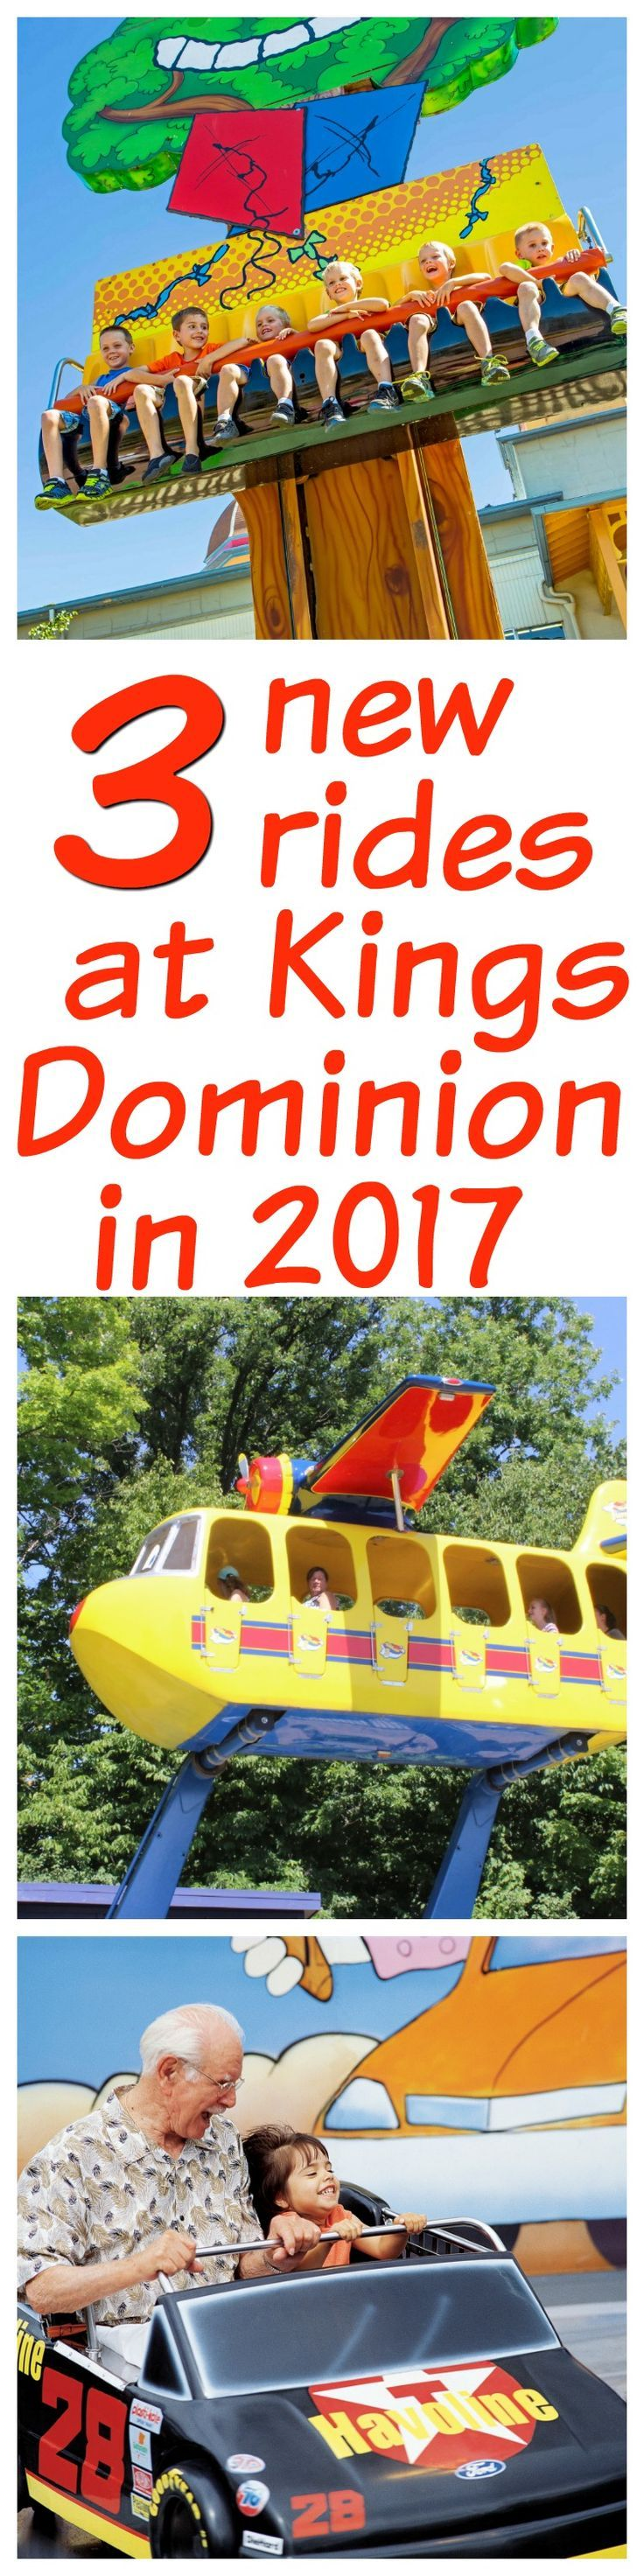 Kings Dominion has announced some exciting news! Three new rides are coming to the park in 2017. Planet Snoopy will be bigger and better than ever. Check out the other exciting news for the park for 2017!